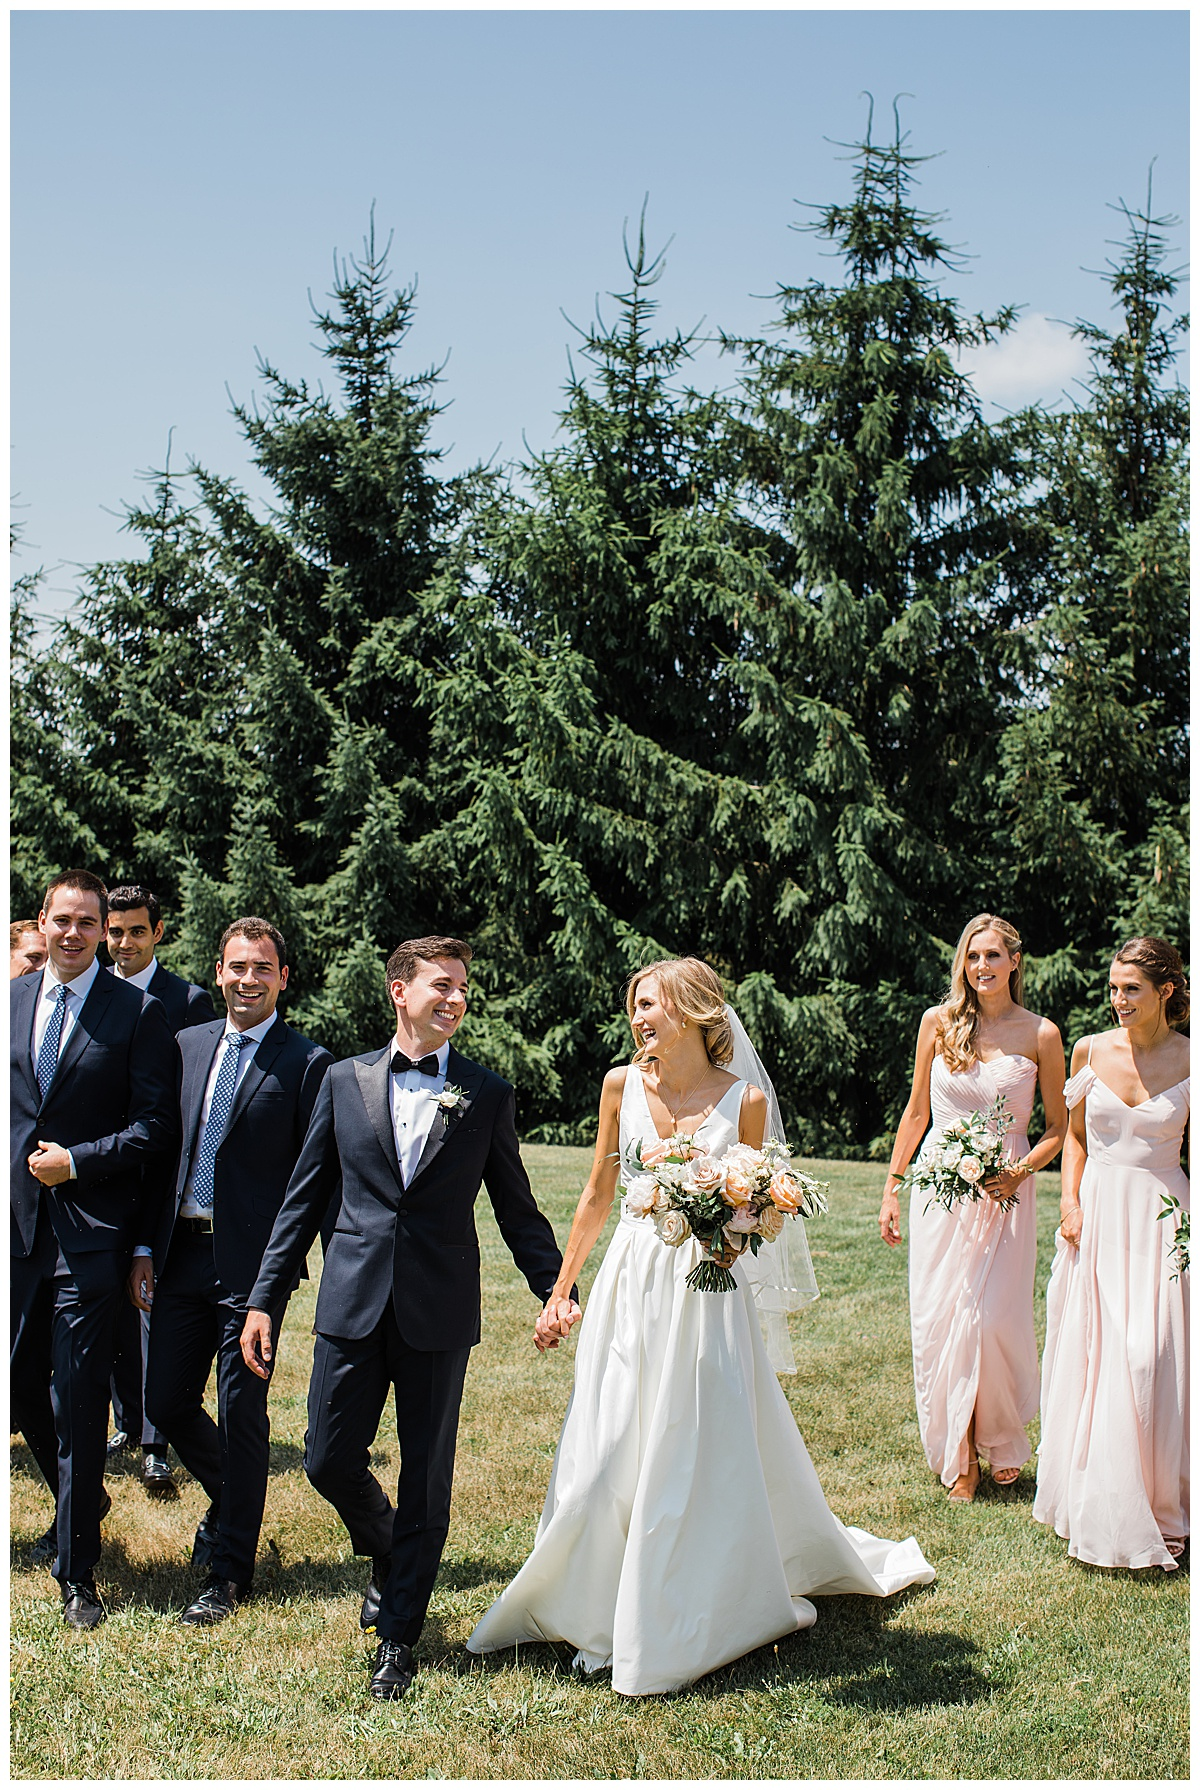 Bridal party walking forward on hill with pine trees behind them| Georgetown, Ontario wedding| 3photography